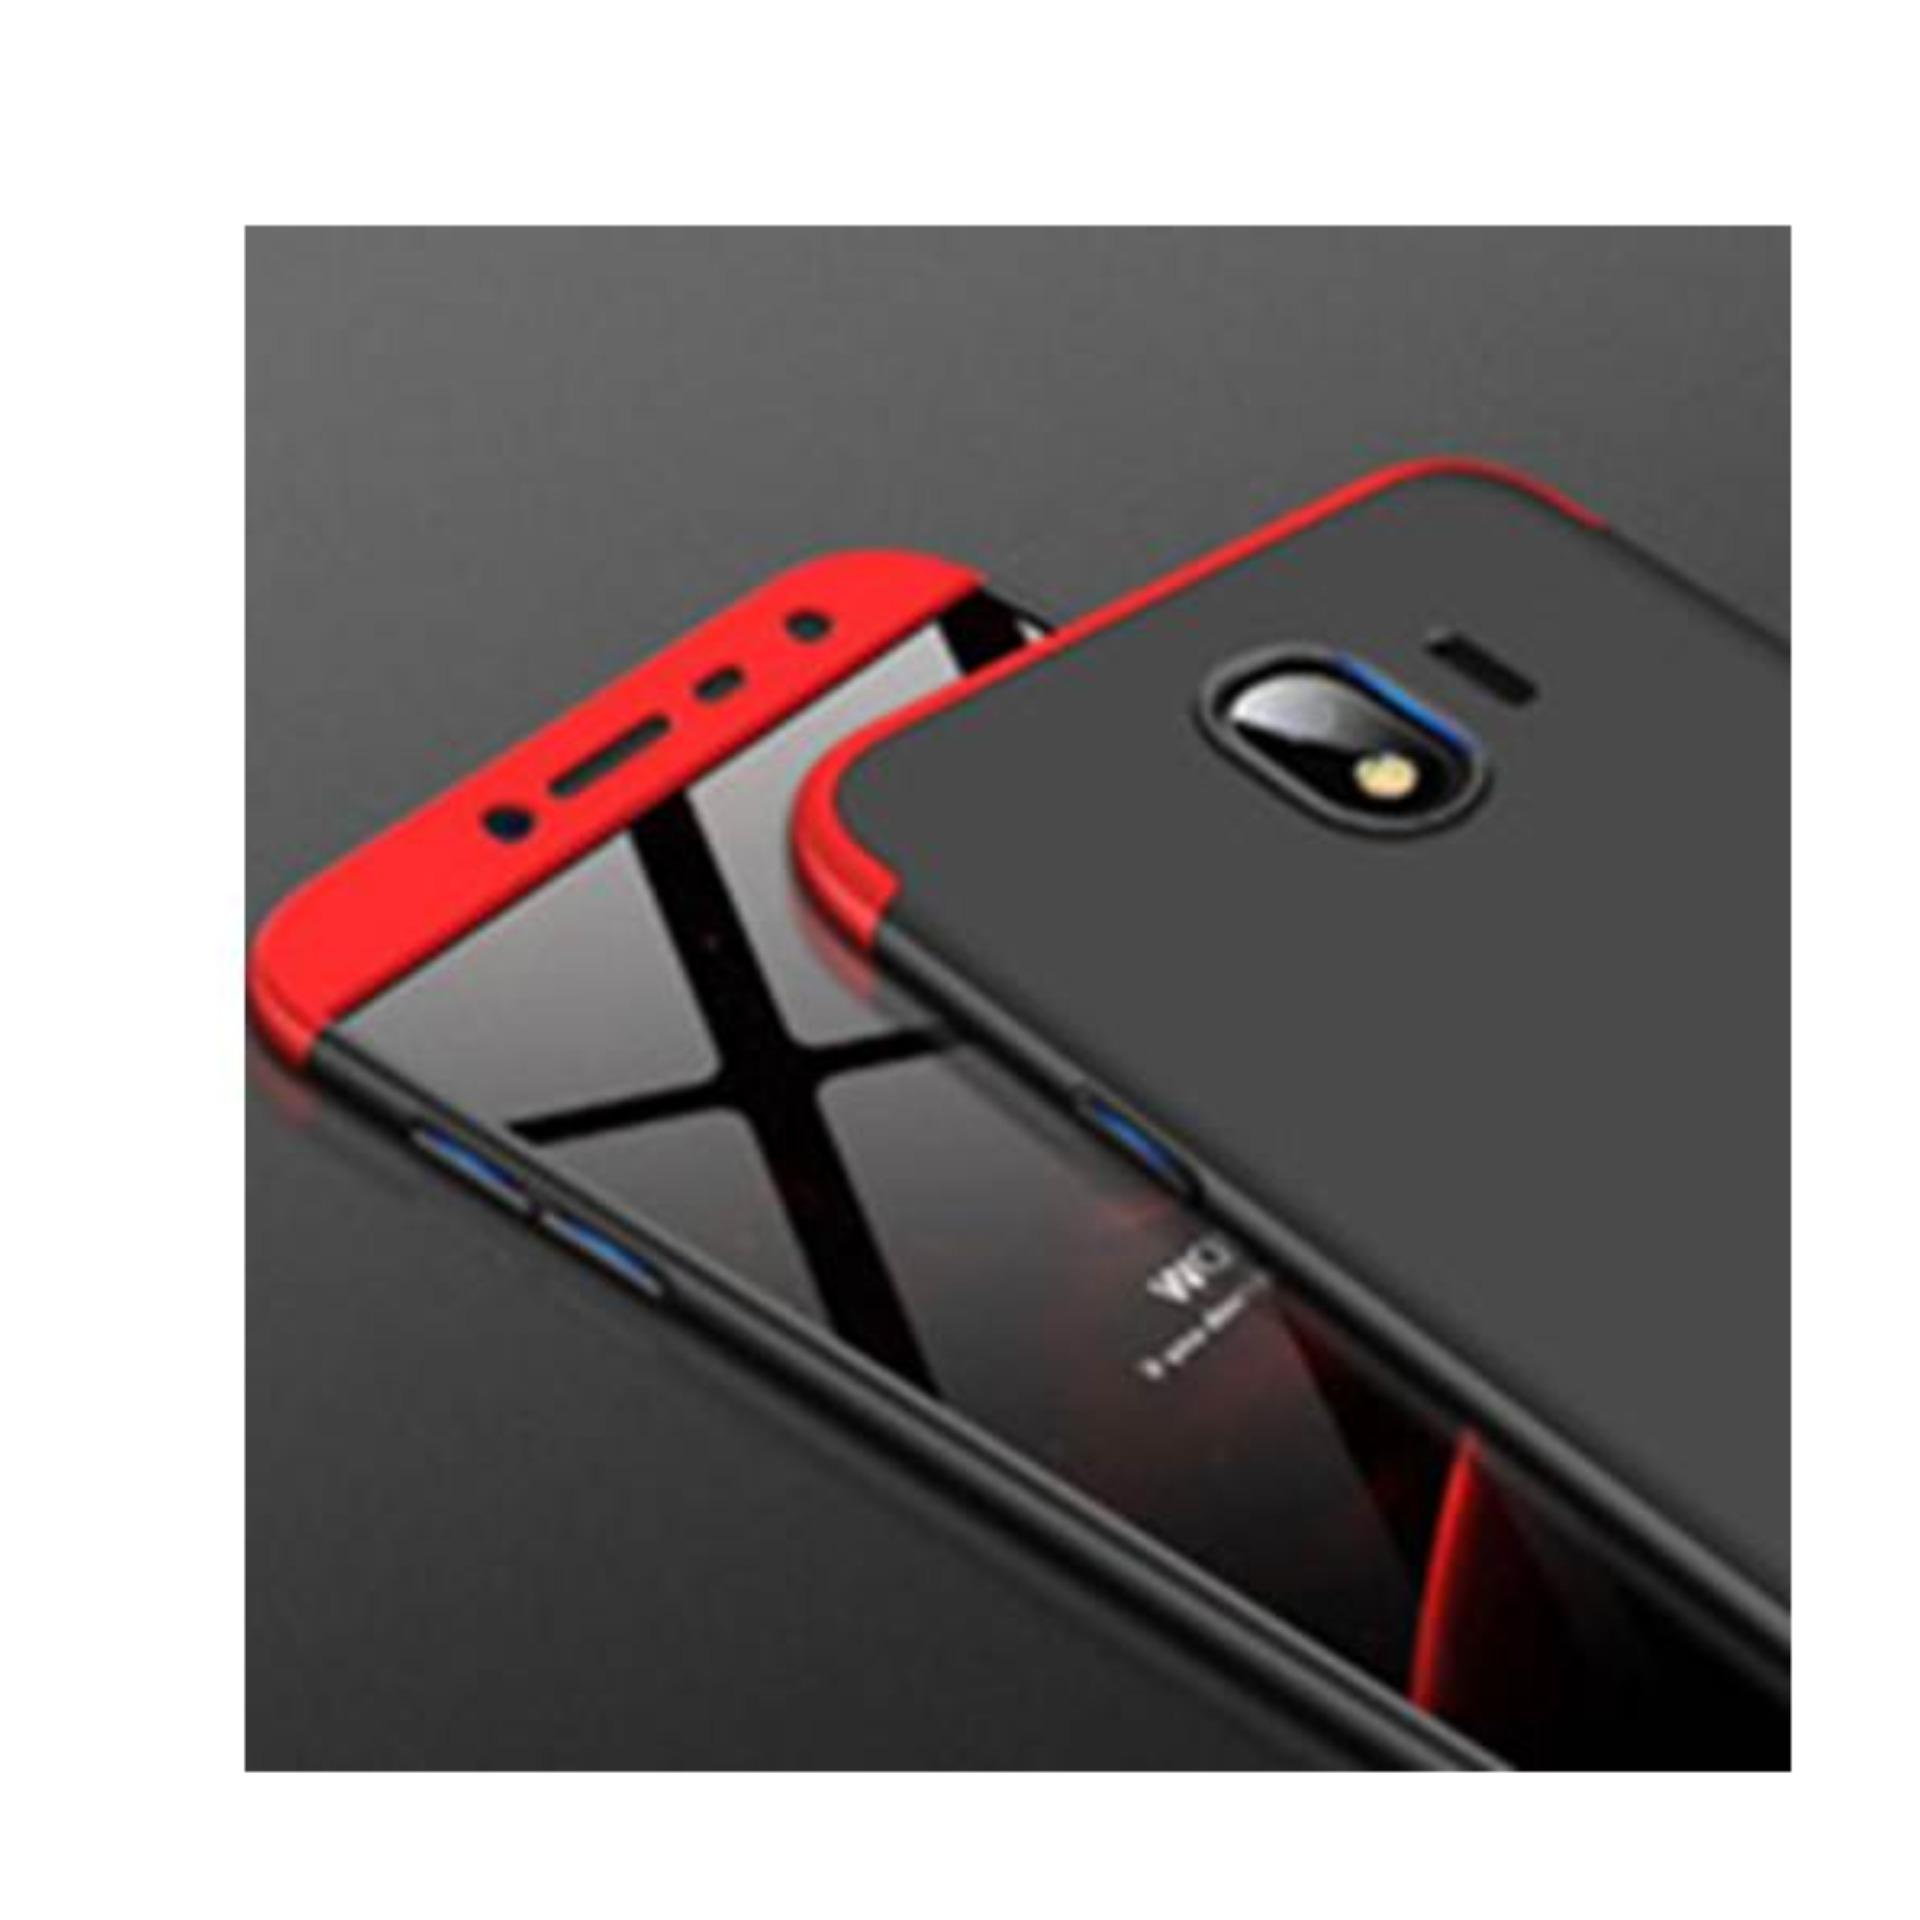 ... CASE HARDCASE PREMIUM FRONT BACK 360 DEGREE FULL PROTECTION FOR SAMSUNG GALAXY J4 2018 / CASE